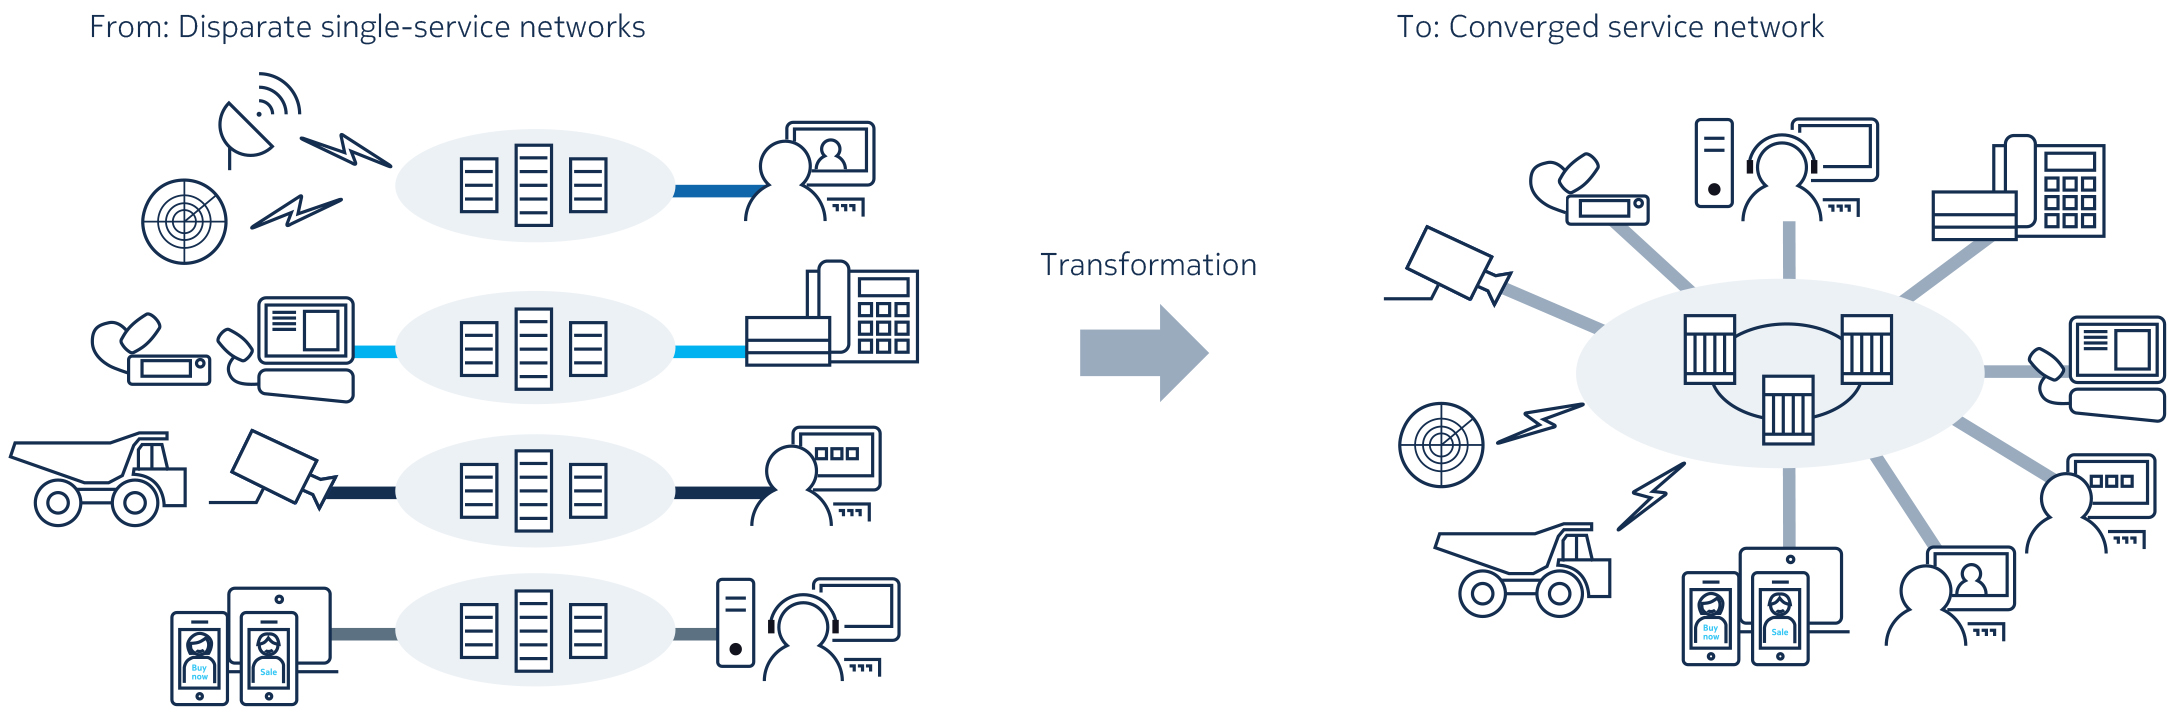 Transformation to a converged service network